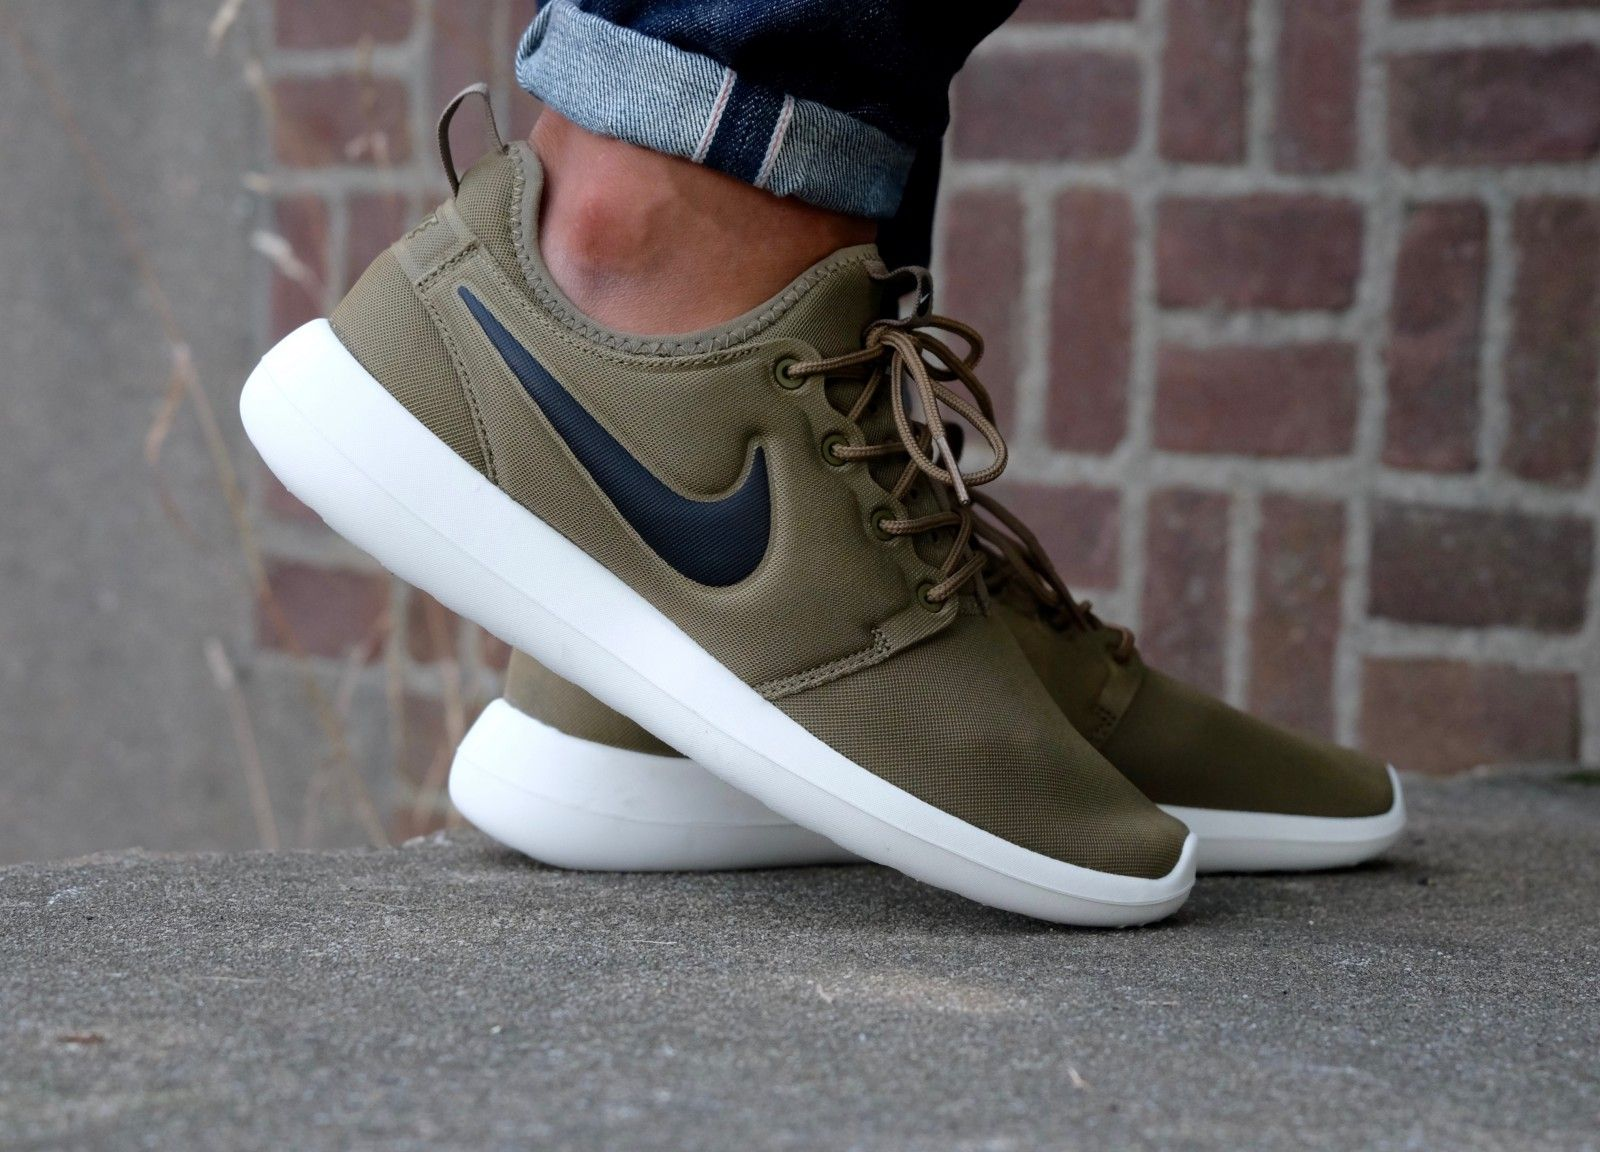 outlet store 3e6d0 40b50 Nike Roshe Two Iguana  Black-Sail-Volt - 844656-200